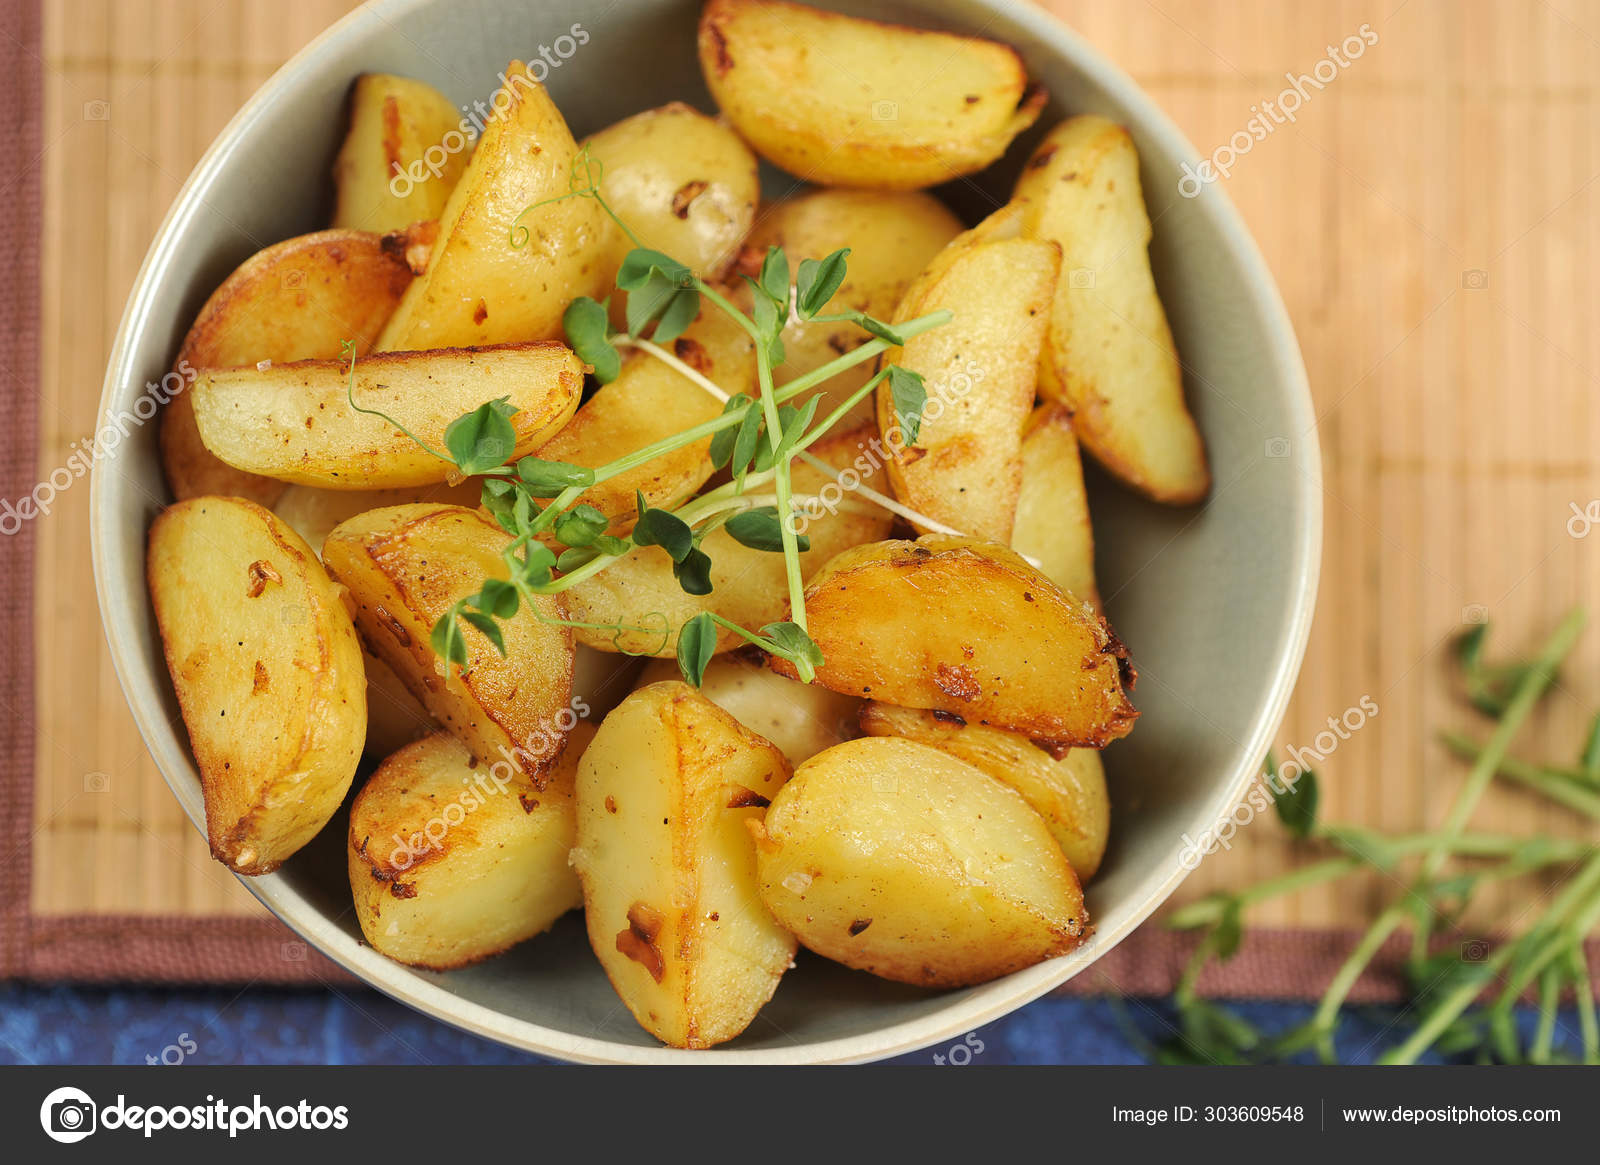 Slices Fried Potatoes Deep Bowl Potatoes Supplemented Sprouts Green Peas Stock Photo C Pavlovaspb 303609548